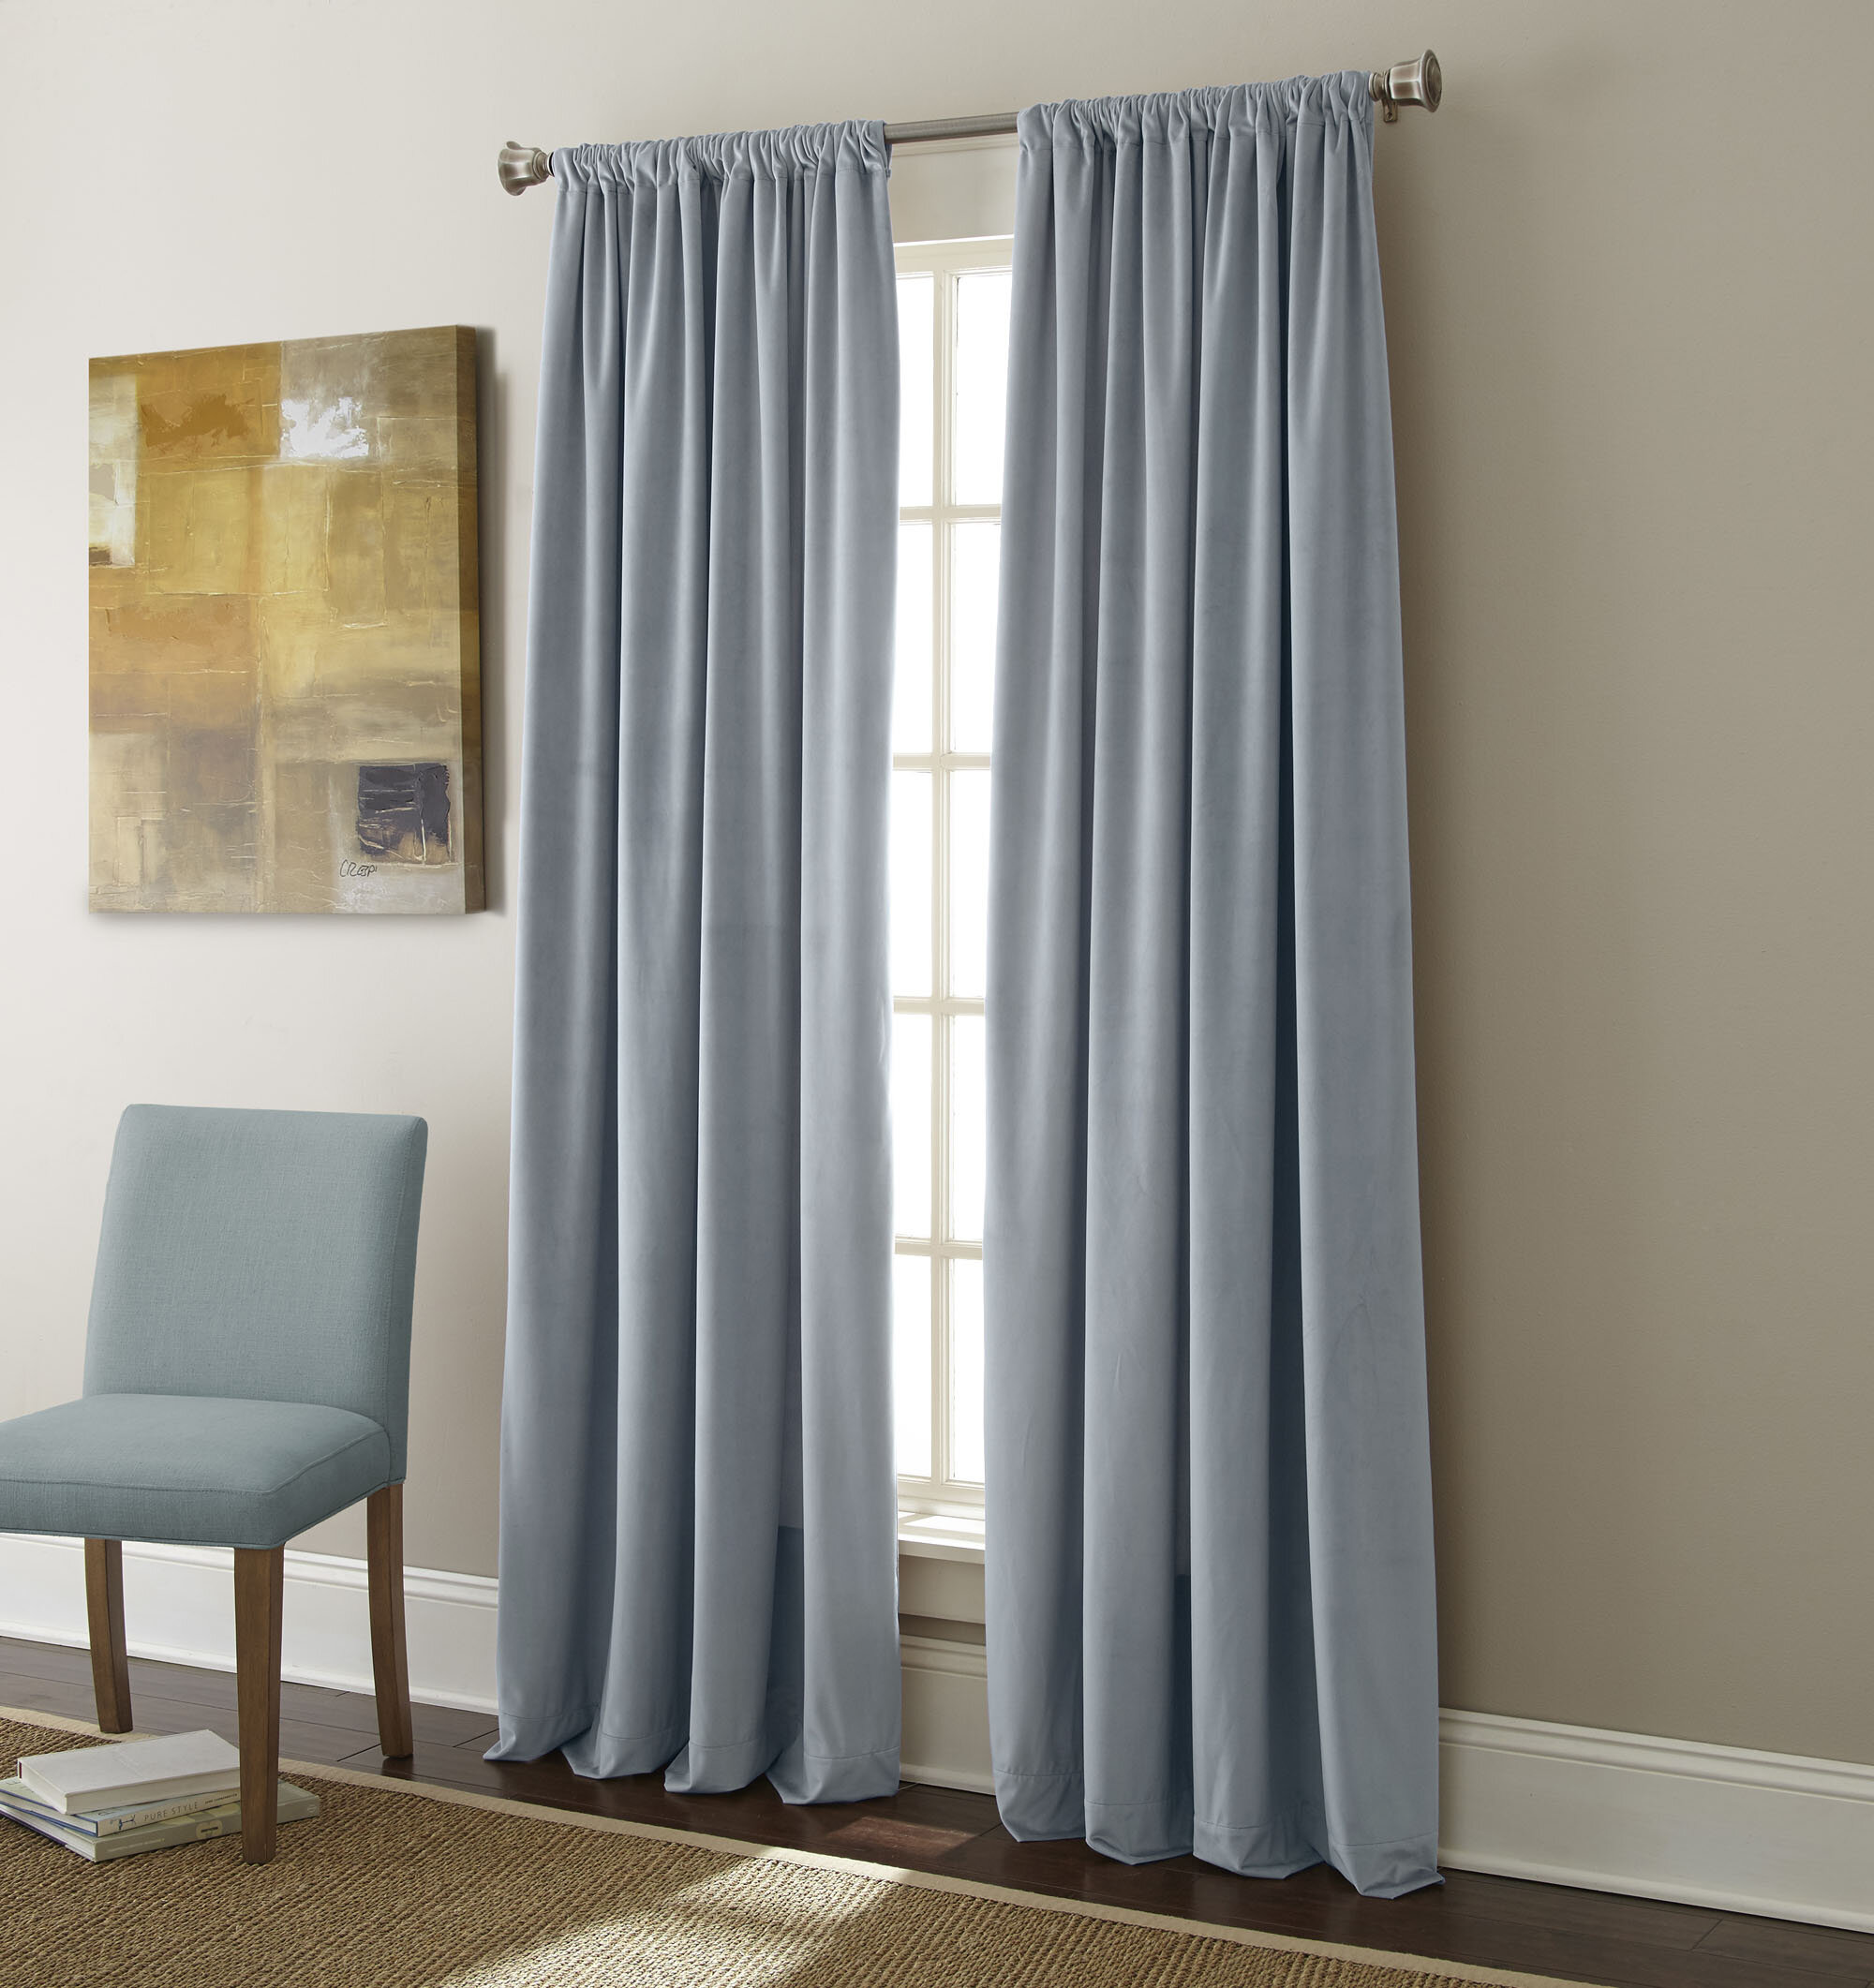 sheer rods pocket full curtains of made panel rod ready panels voile sparkle crushed blinds royal uk velvet size curtain excellent lightweight